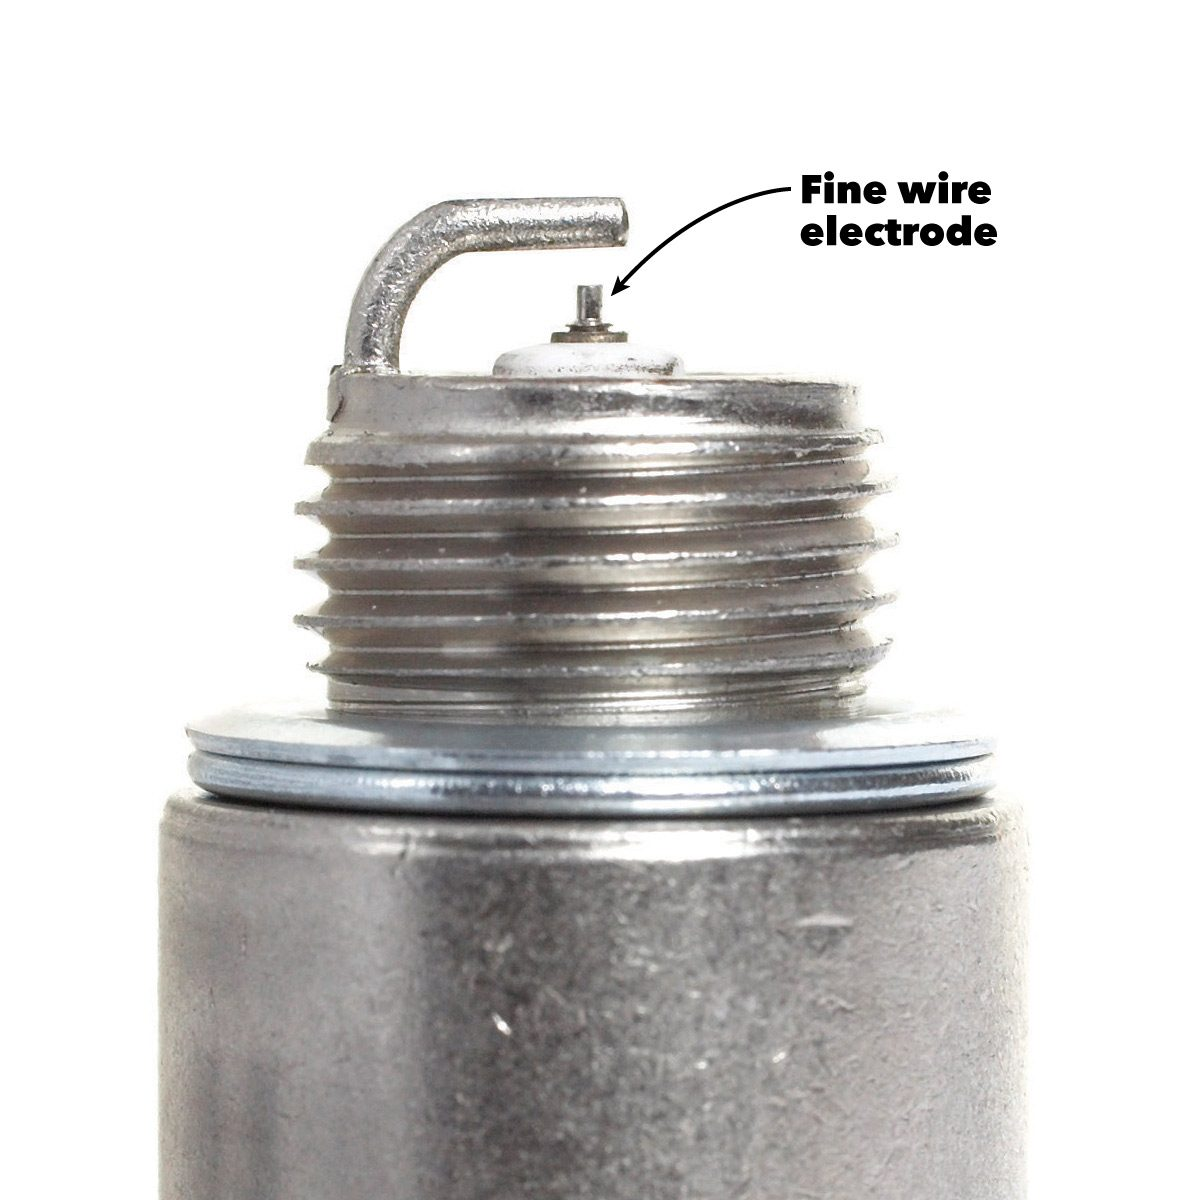 hight resolution of when you change the spark plugs don t be shocked to see the center electrode worn down to the size of a pin if your car was equipped with fine wire